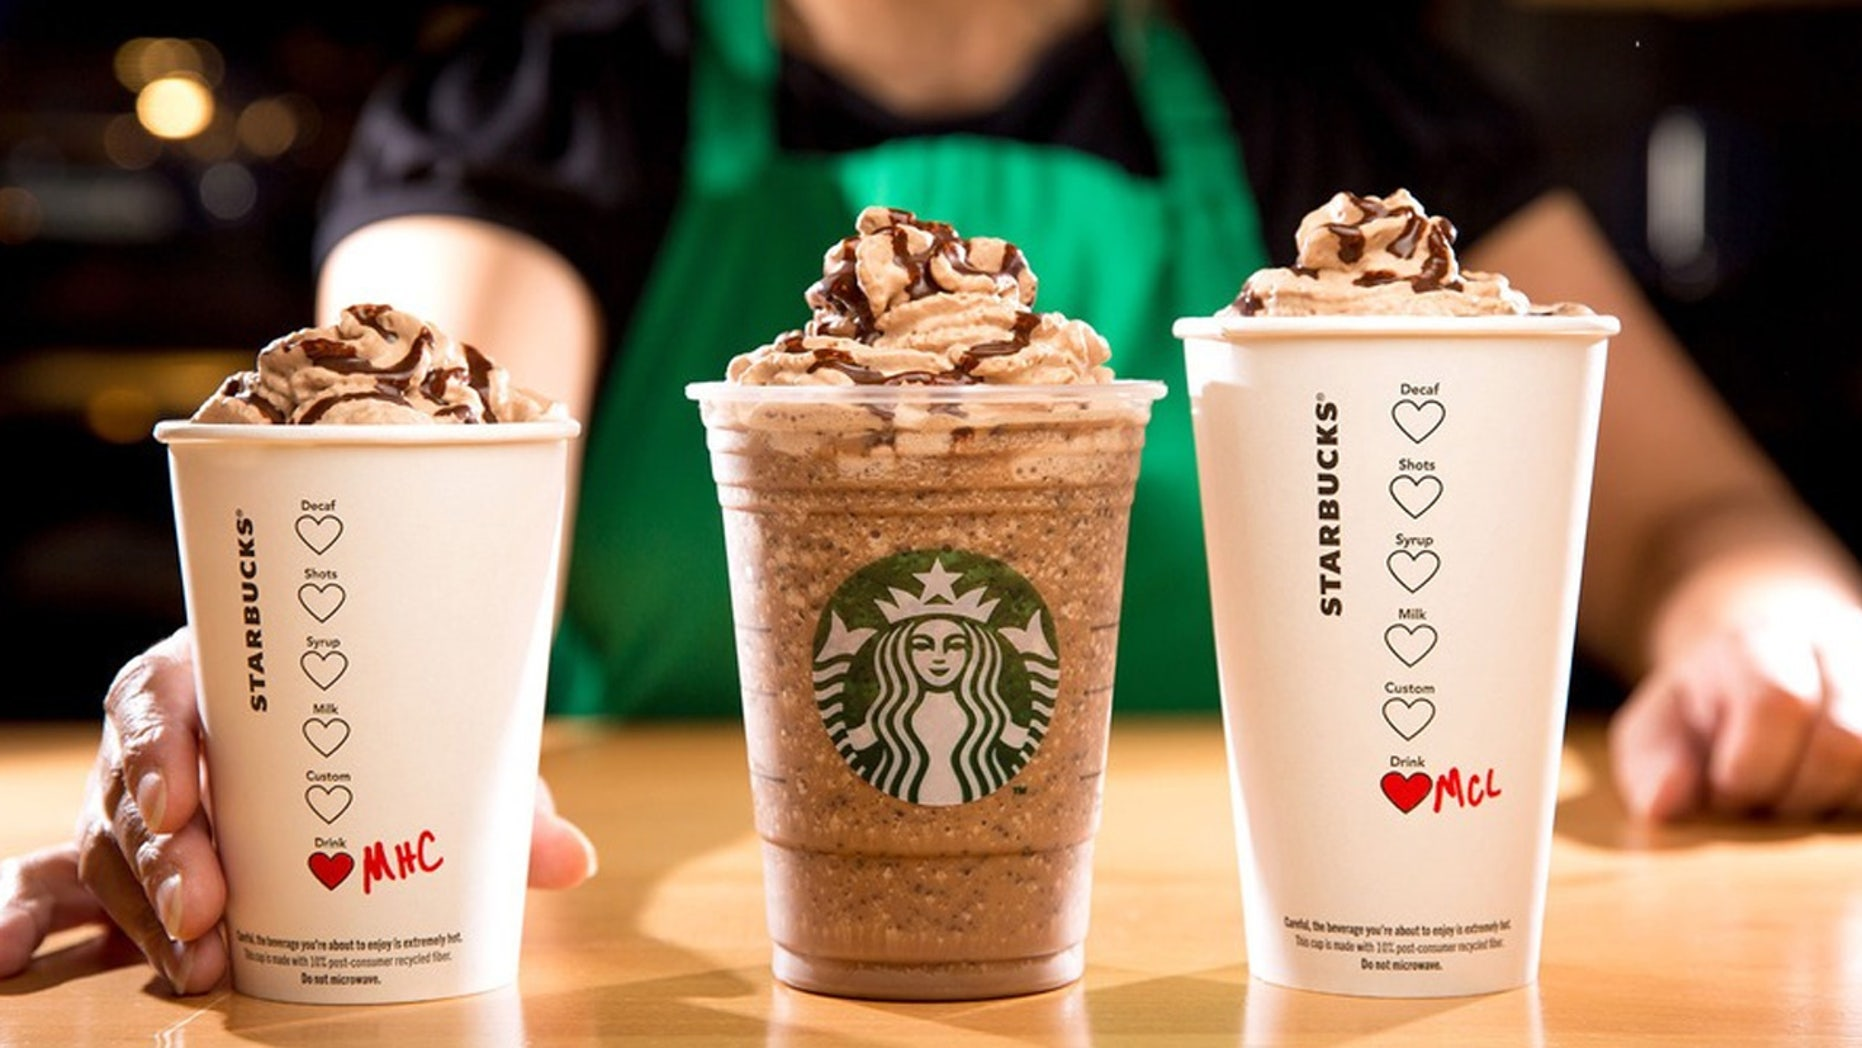 Molten Chocolate Latte, Molten Chocolate Frappuccino, and the Molten Hot Chocolate are only around through Sunday, February 14.